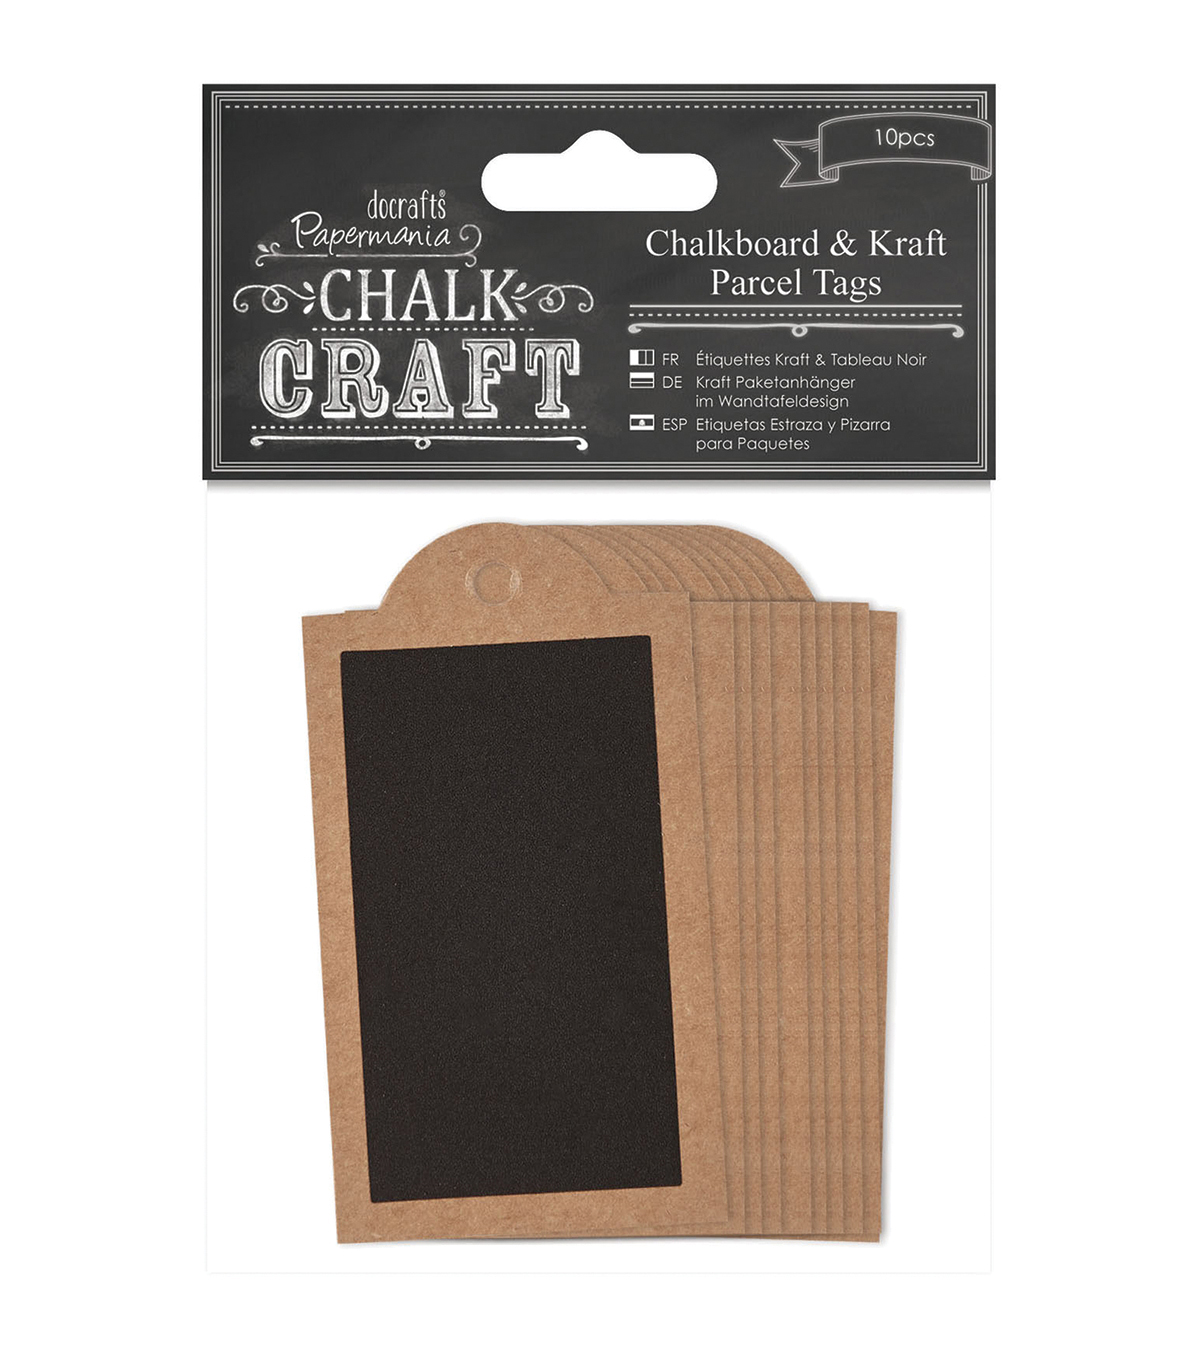 Papermania Chalk Craft Chalkboard & Craft Parcel Tags